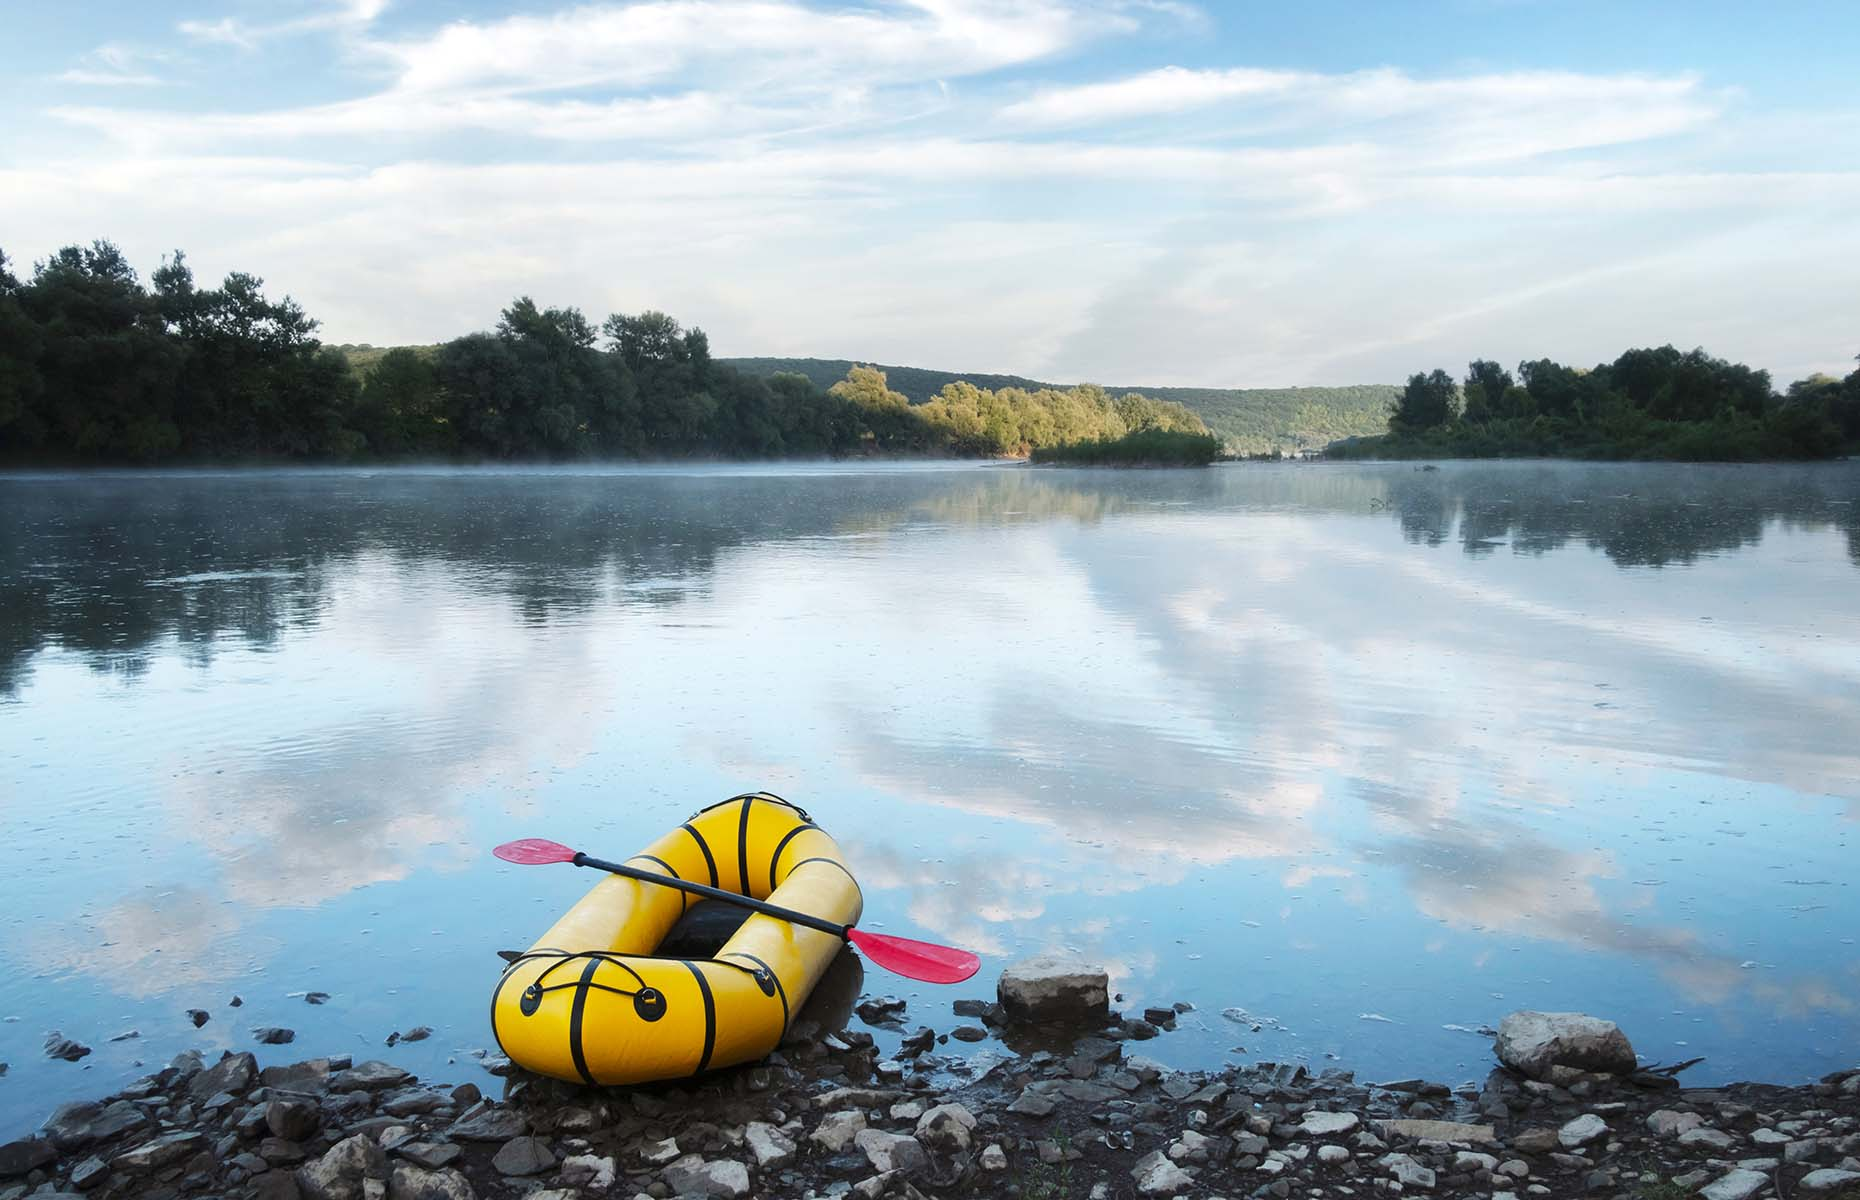 Go on a packrafting journey (Image: Smit/Shutterstock)